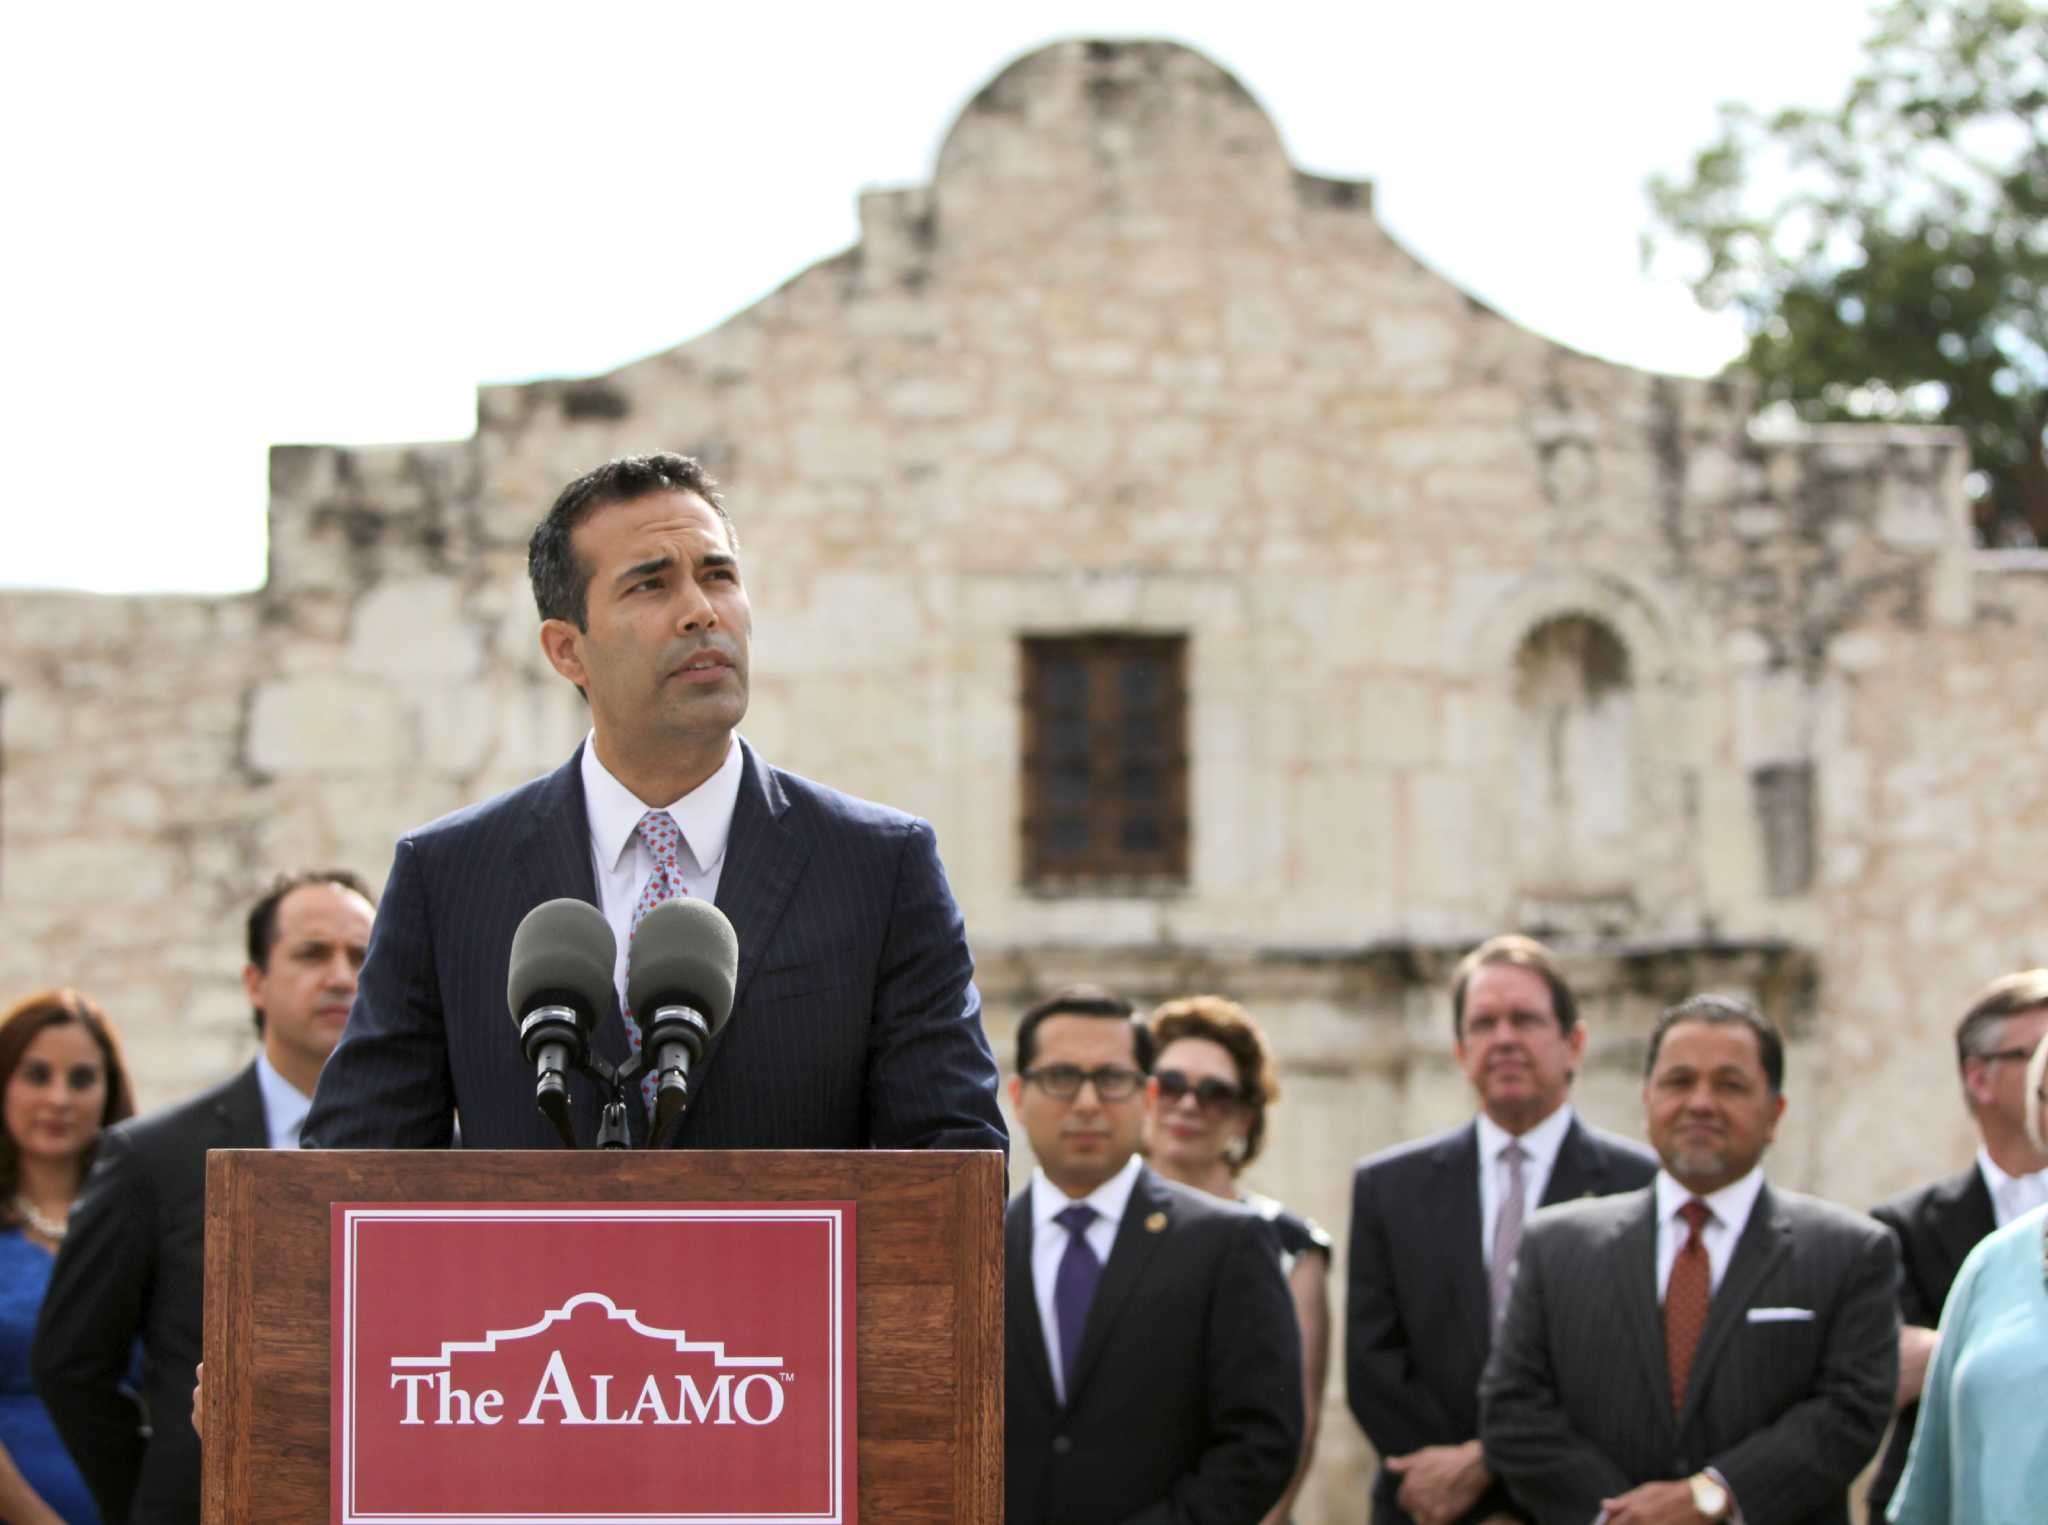 george p bush reboot of land office has campaign family ties george p bush reboot of land office has campaign family ties houston chronicle